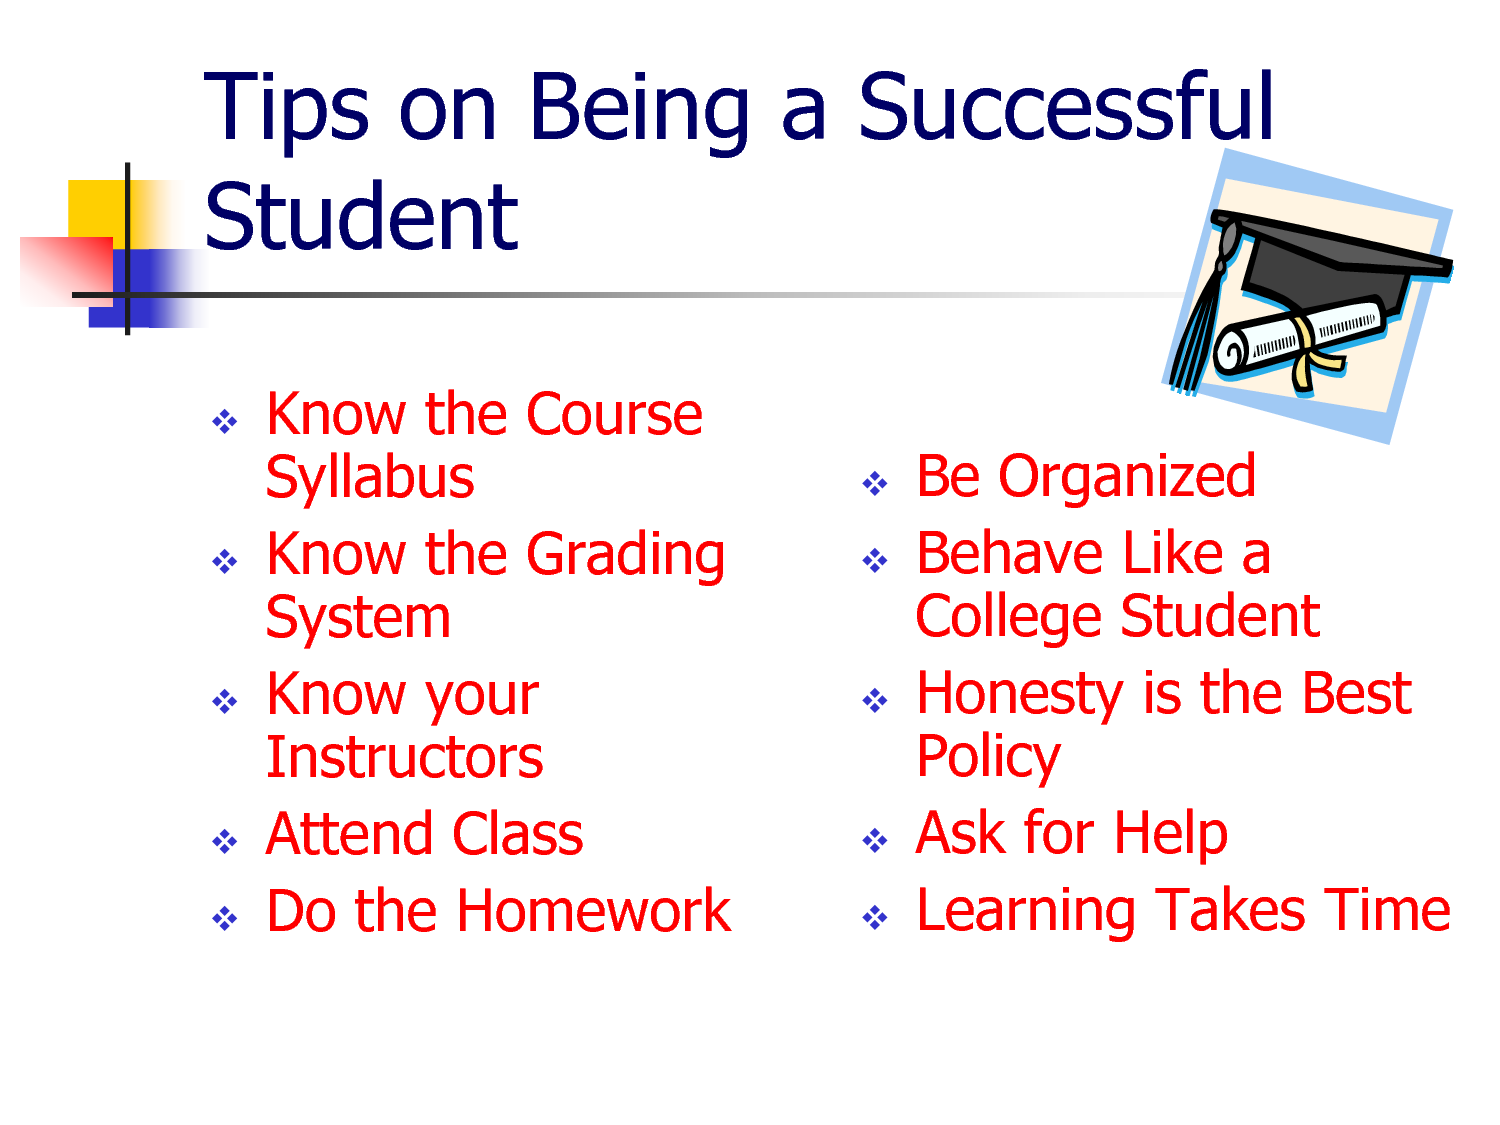 Tips for successful students